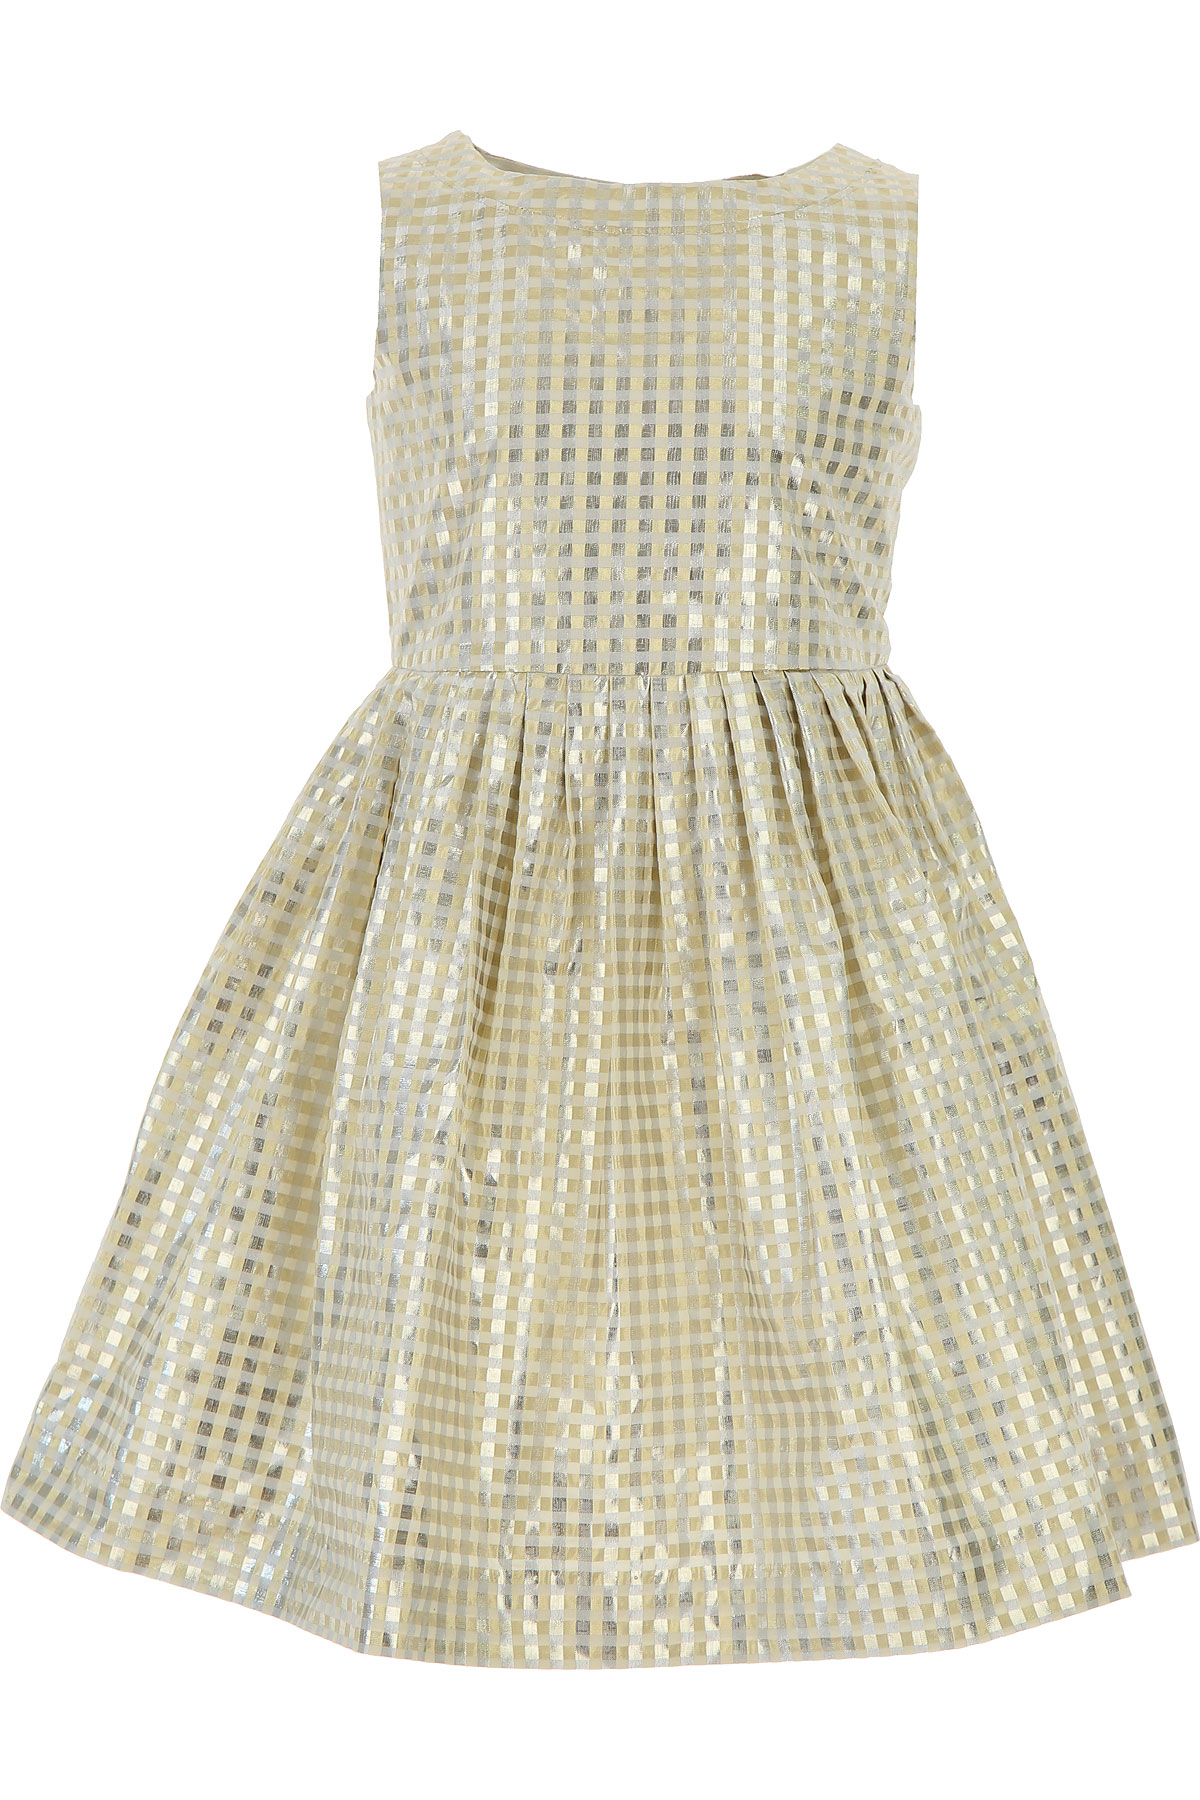 Image of Bonpoint Girls Dress On Sale, Gold, Cotton, 2017, 10Y 4Y 6Y 8Y